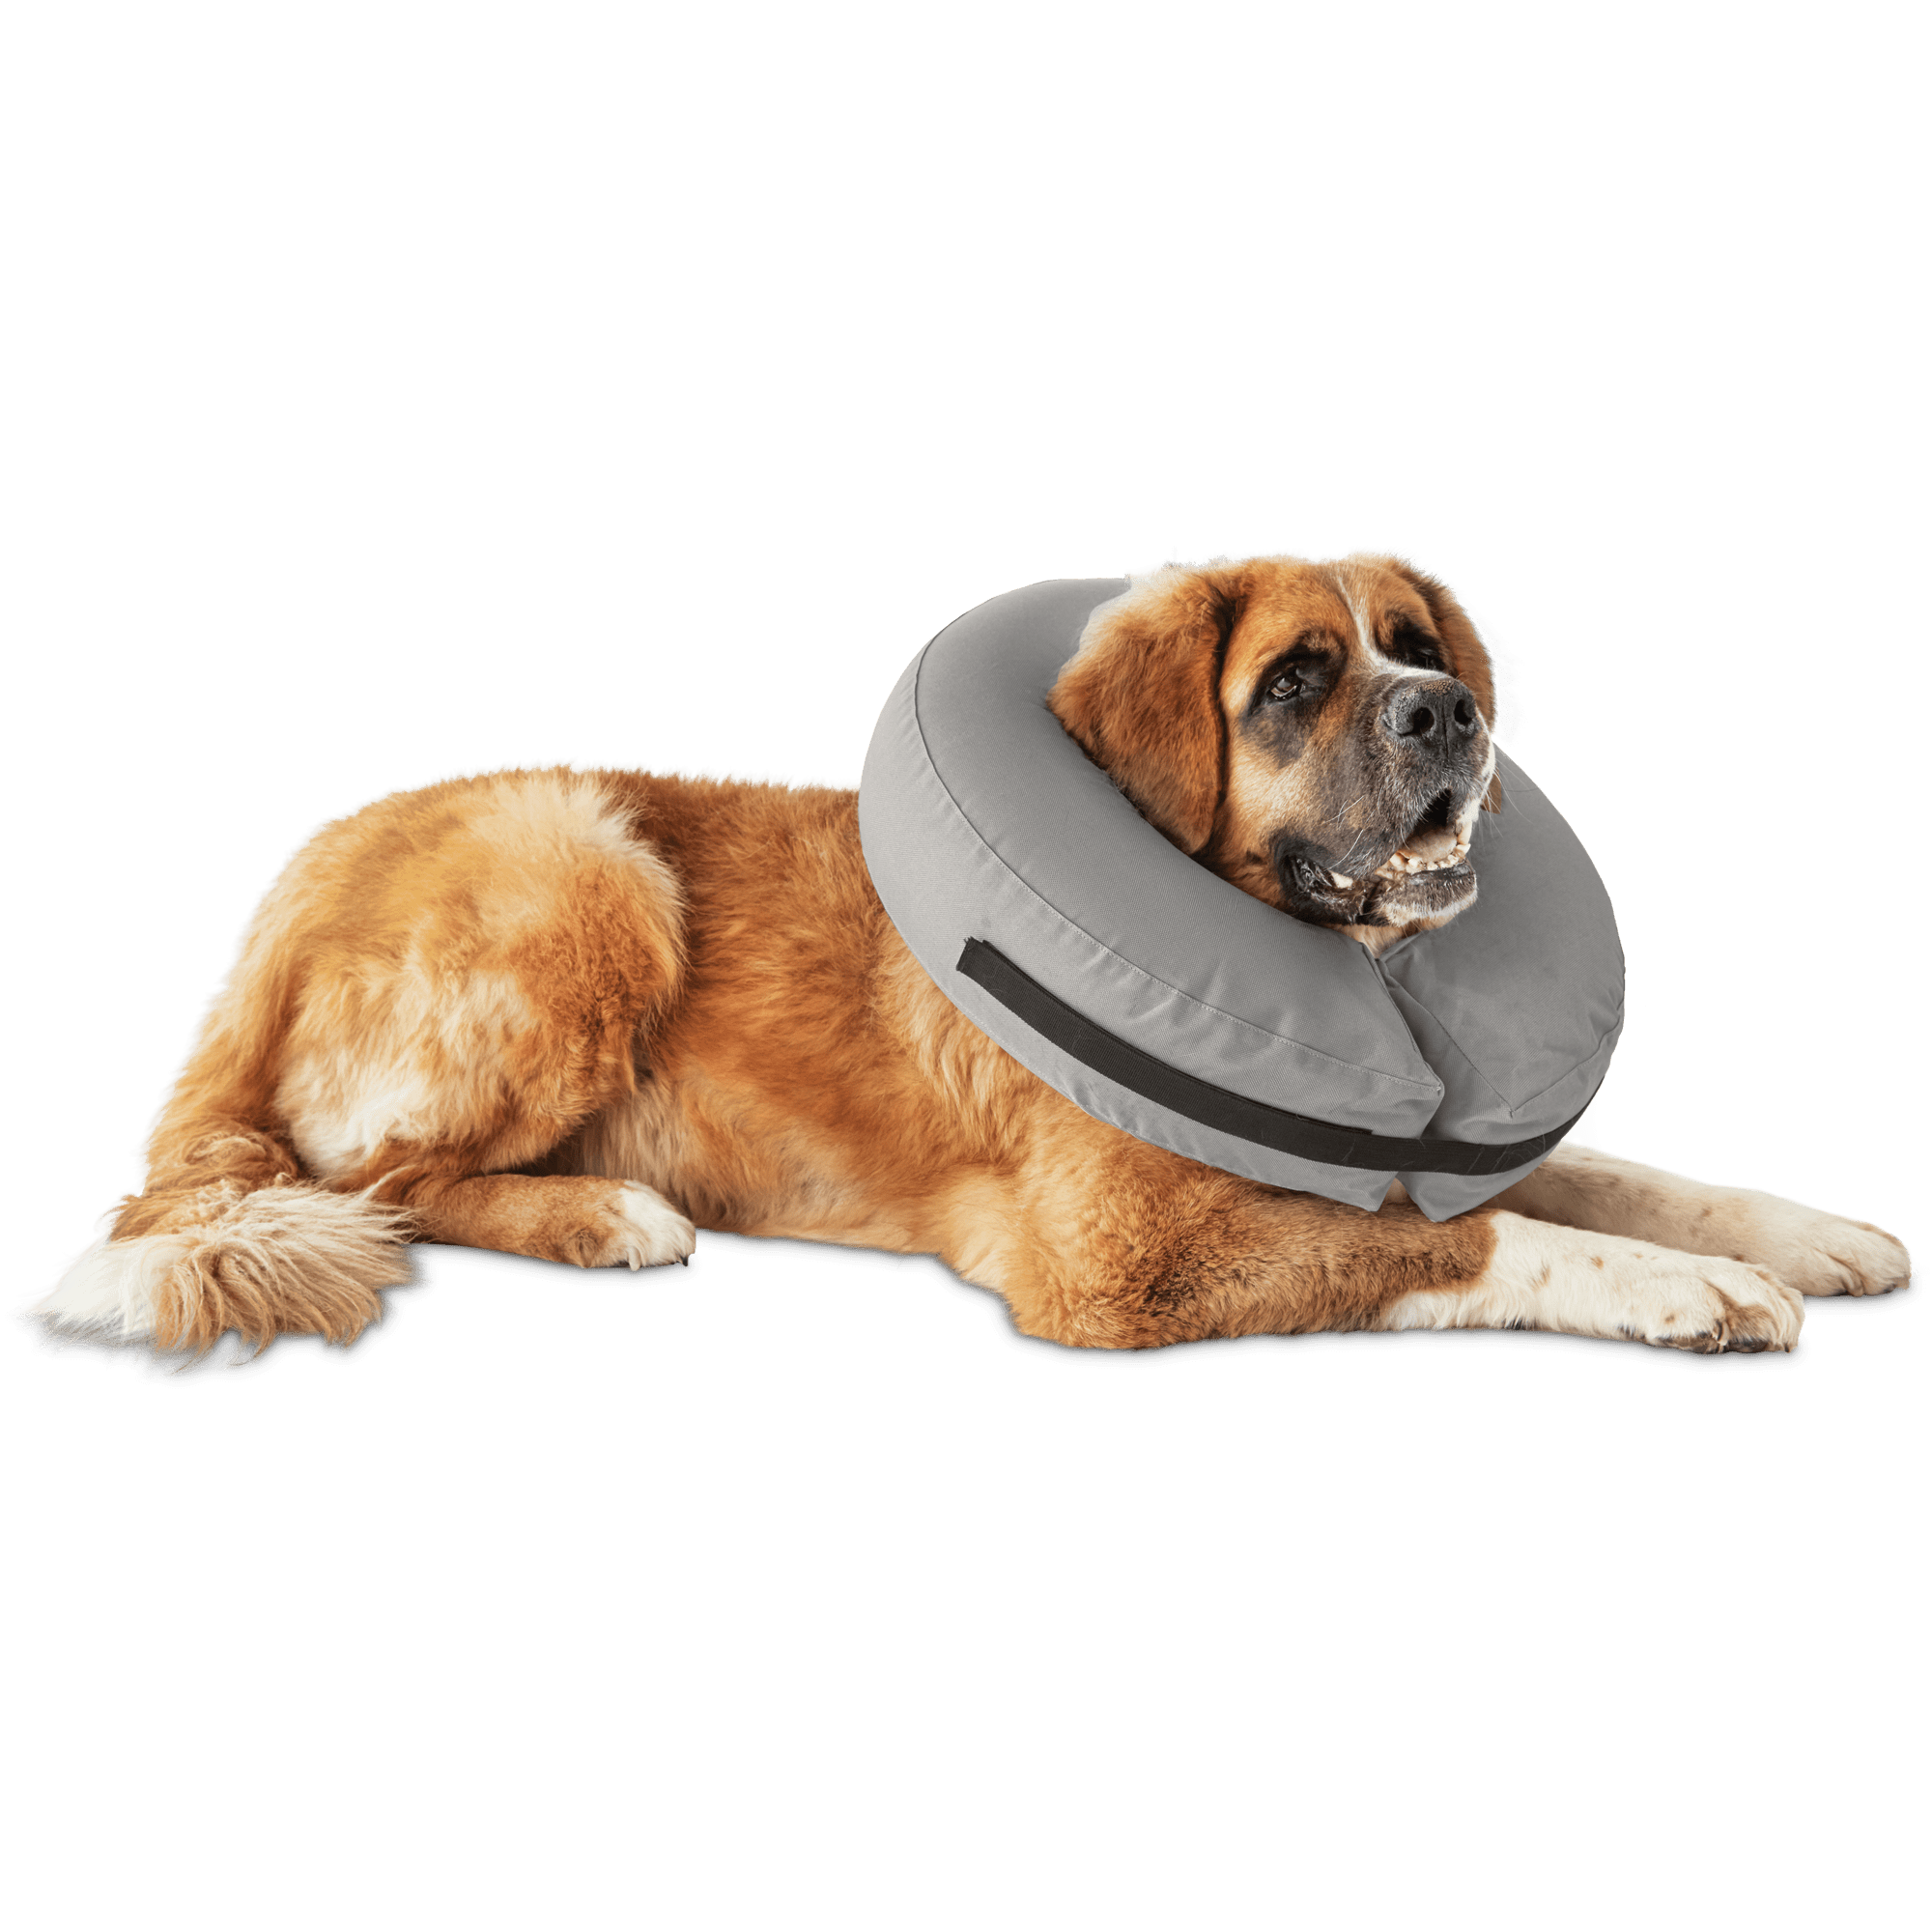 The Well & Good Inflatable Collar for Dogs and Cats creates a comfortable barrier inhibiting your pet from aggravating their wounds. Its rounded and unobtrusive design allows your dog a wide field of vision so they can comfortably heal.